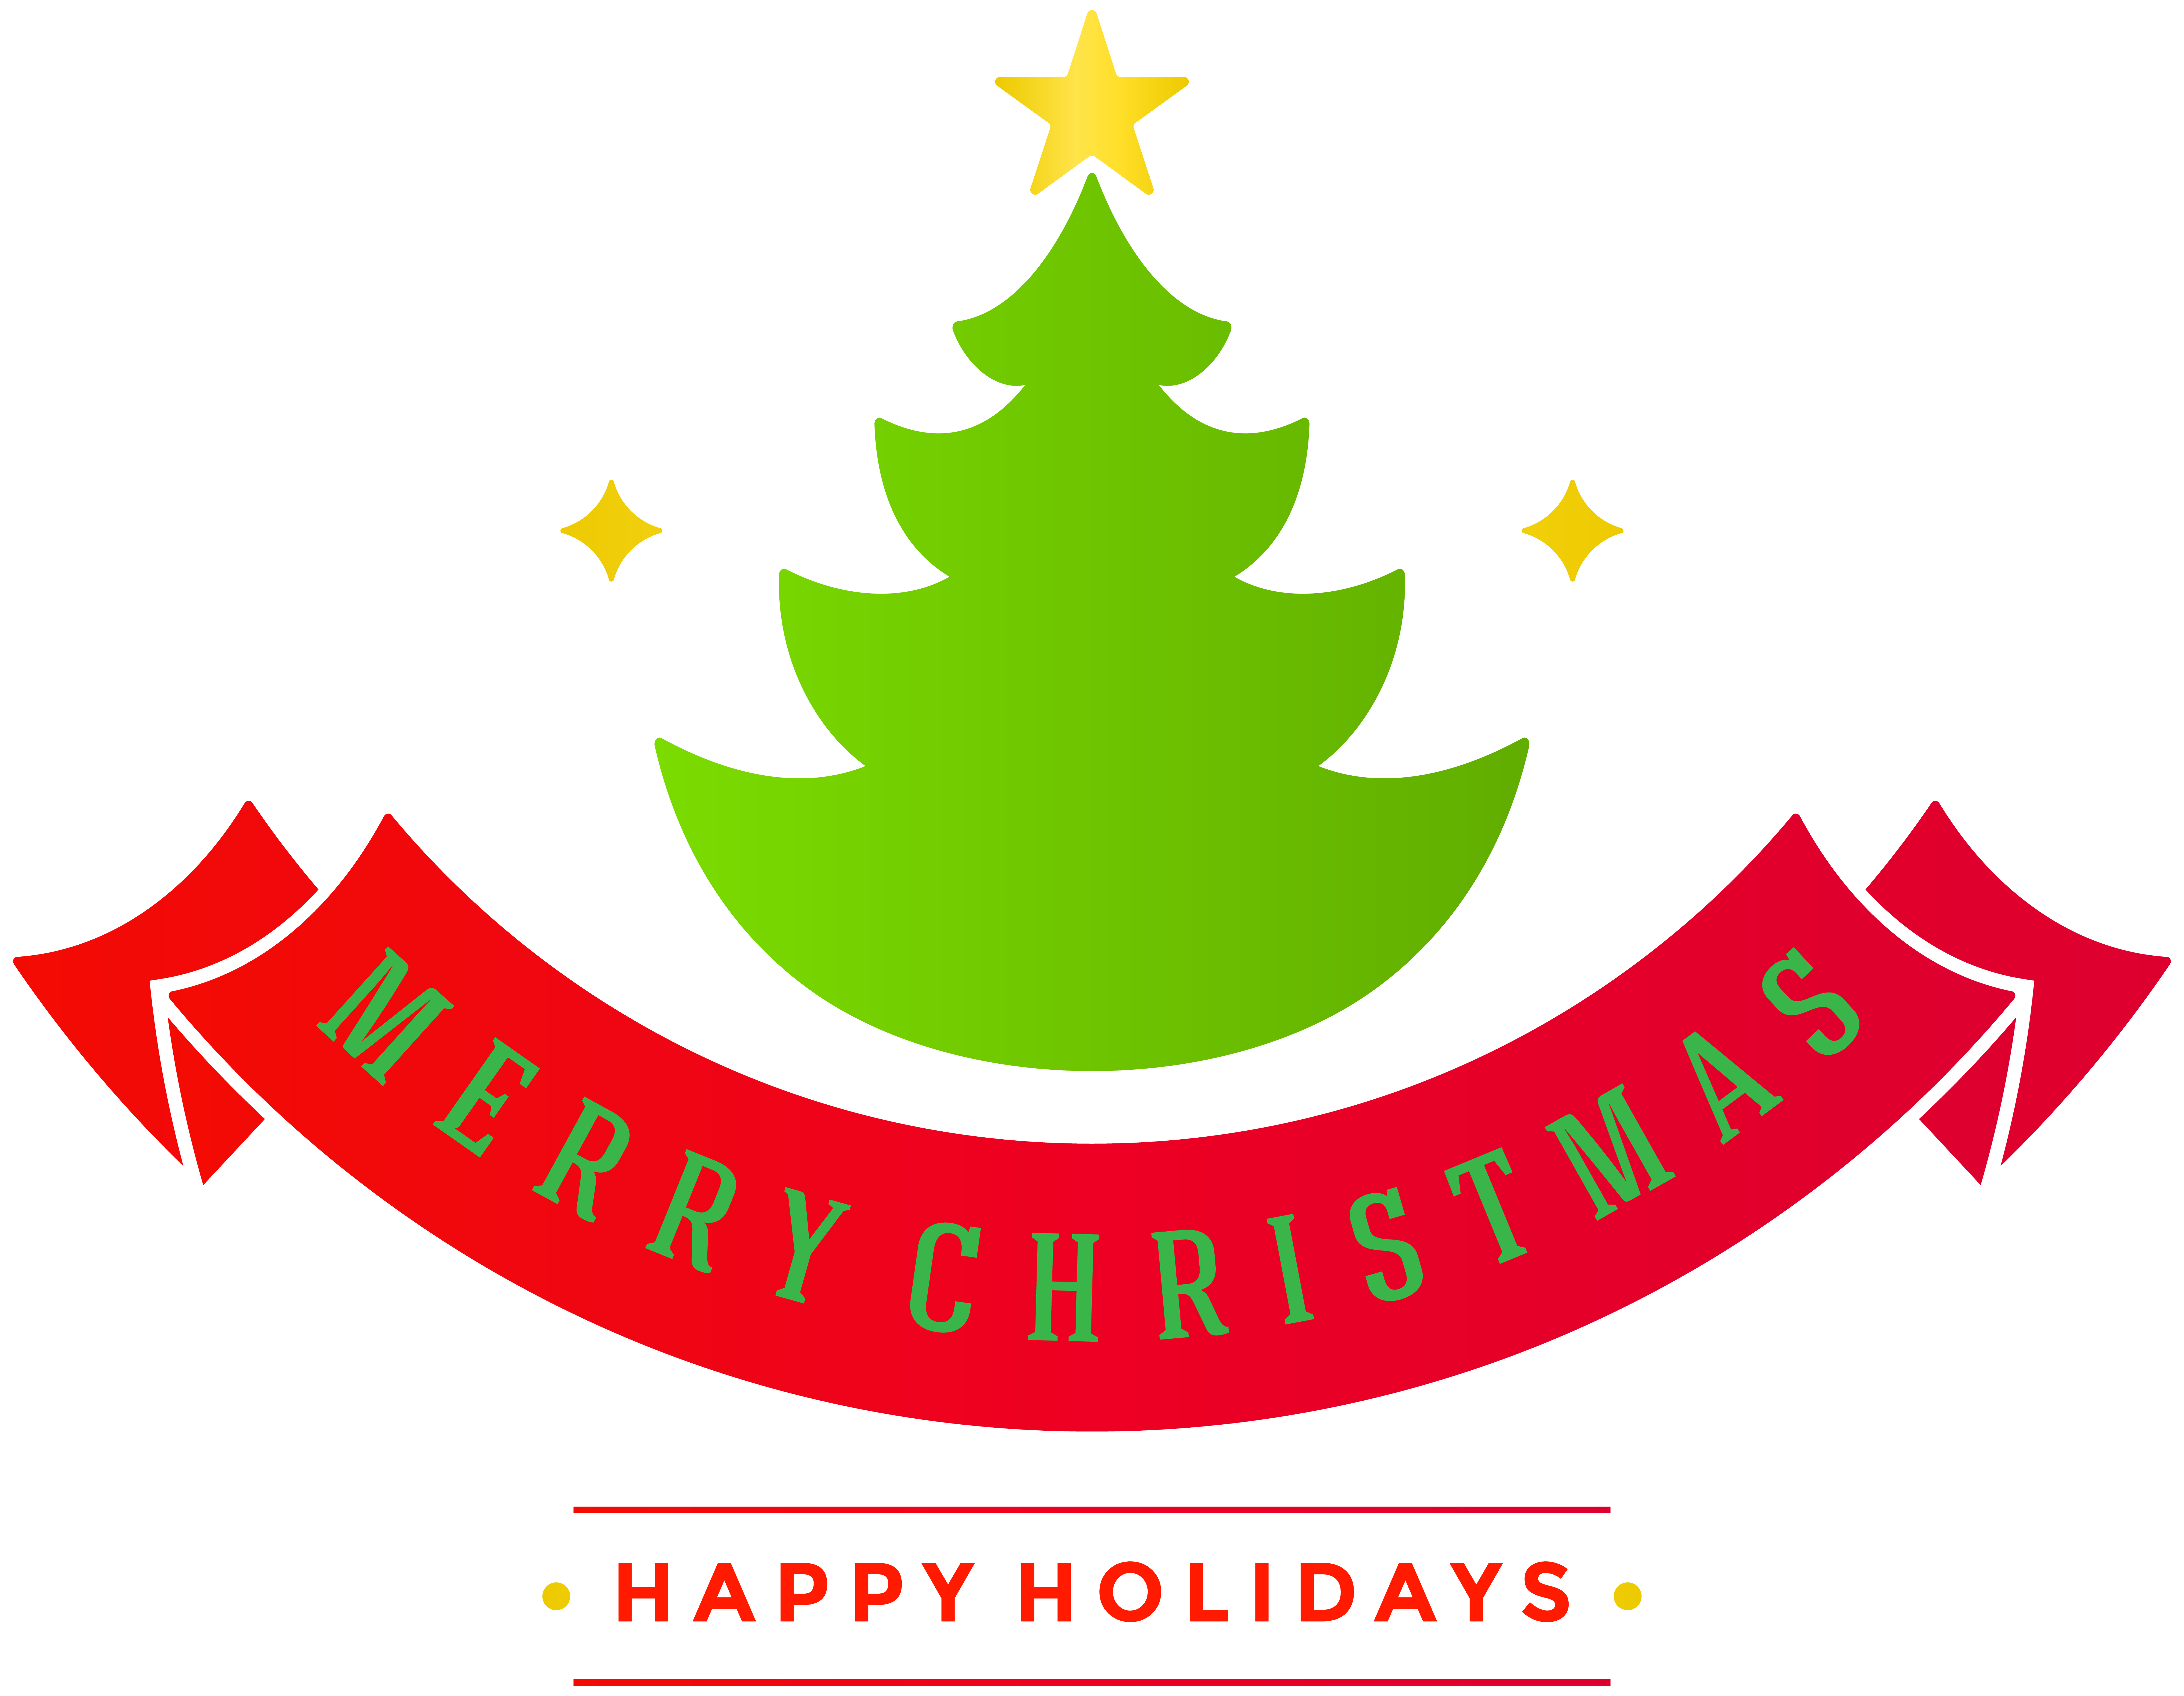 Merry clip art gallery. Christmas stamp png image transparent download